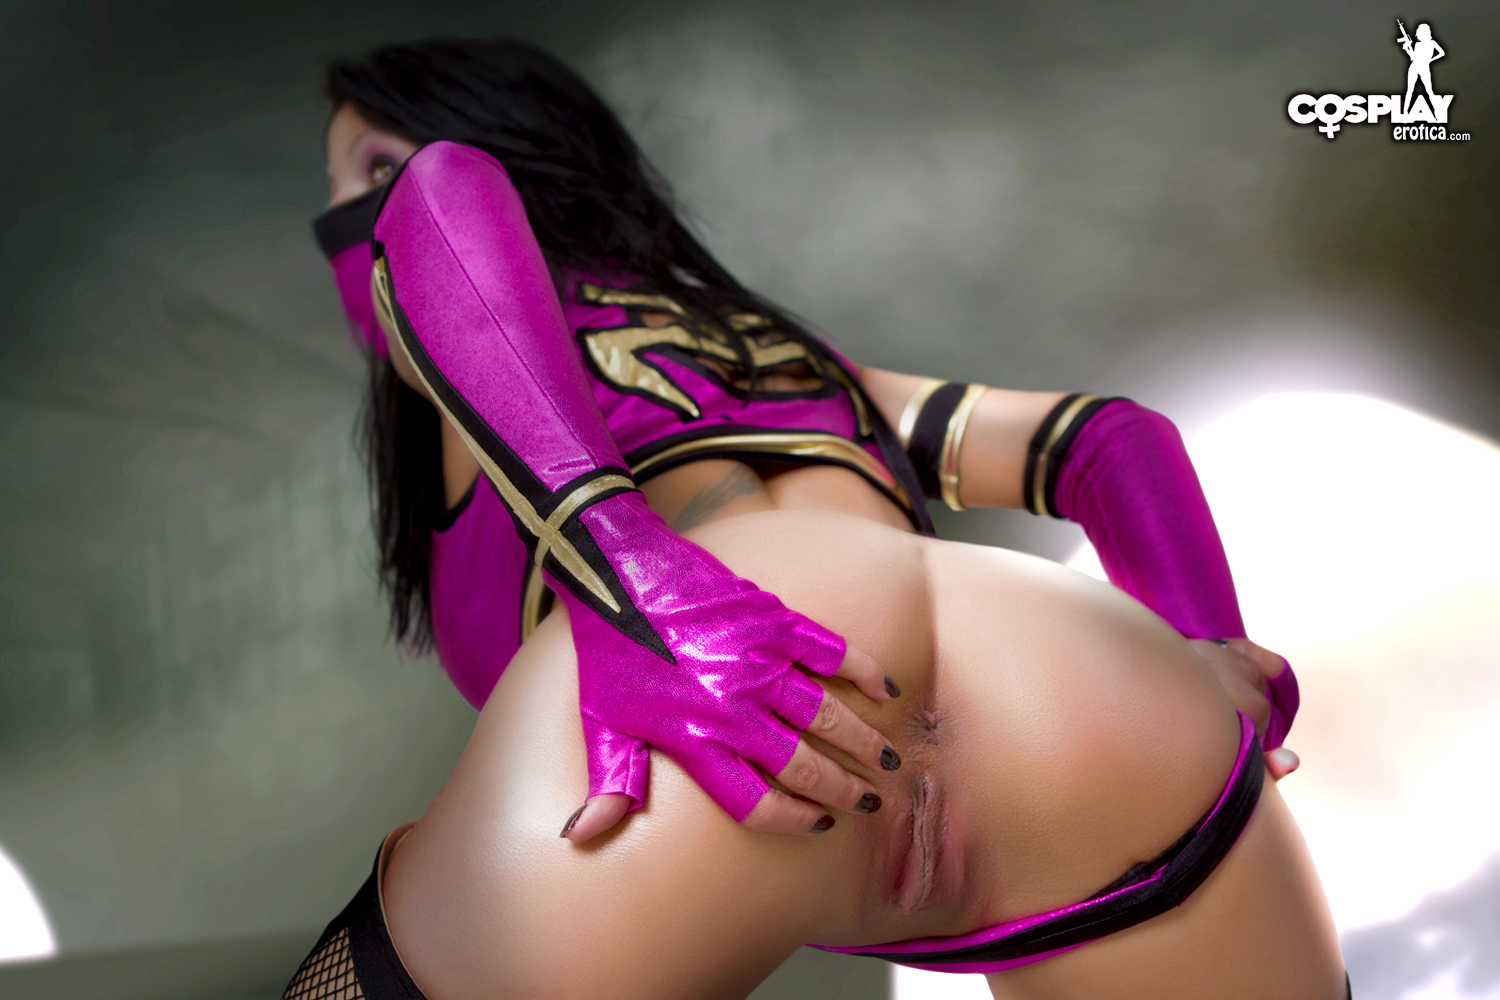 Mortal kombat sexy kitana naked consider, that